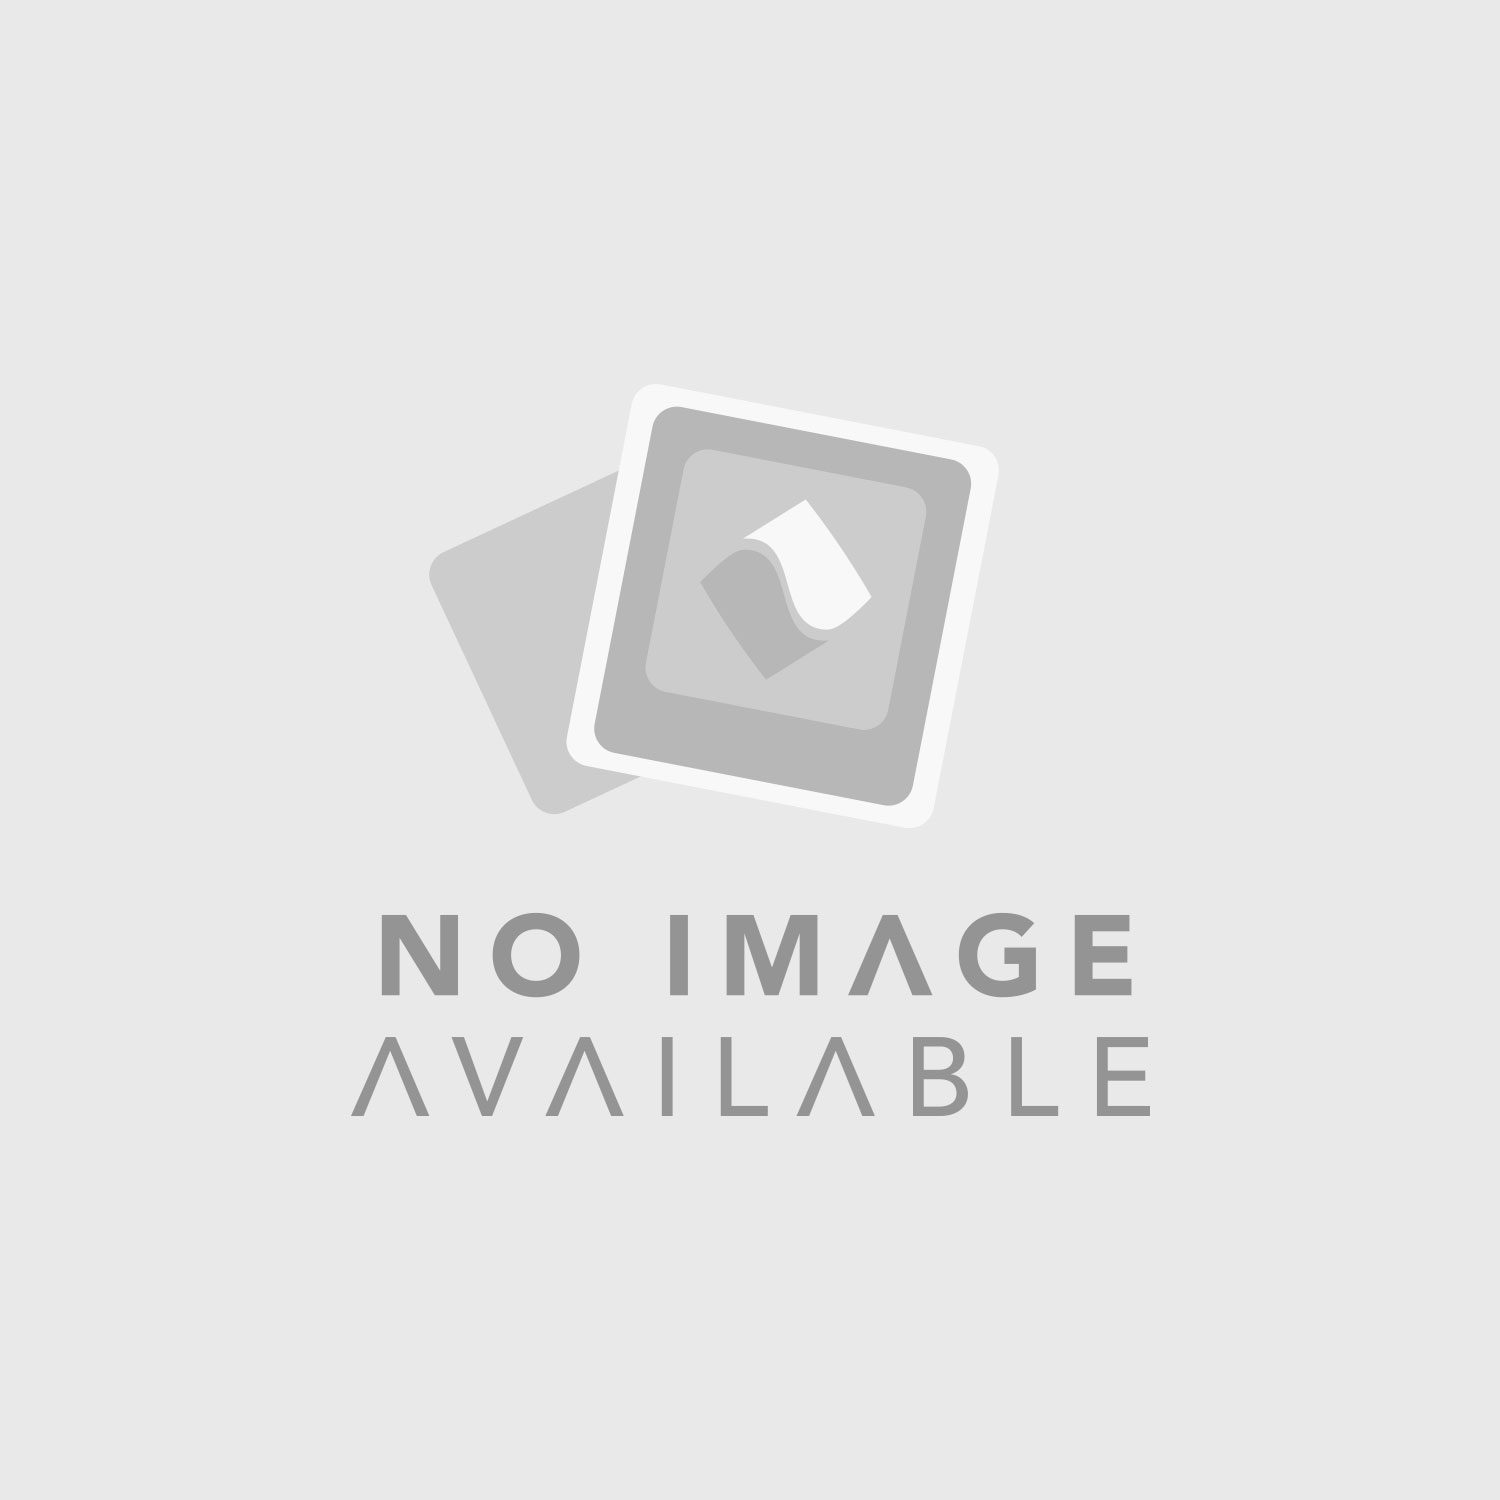 NTi Exel Acoustics Set with M2211 Measurement Microphone (Class 1)